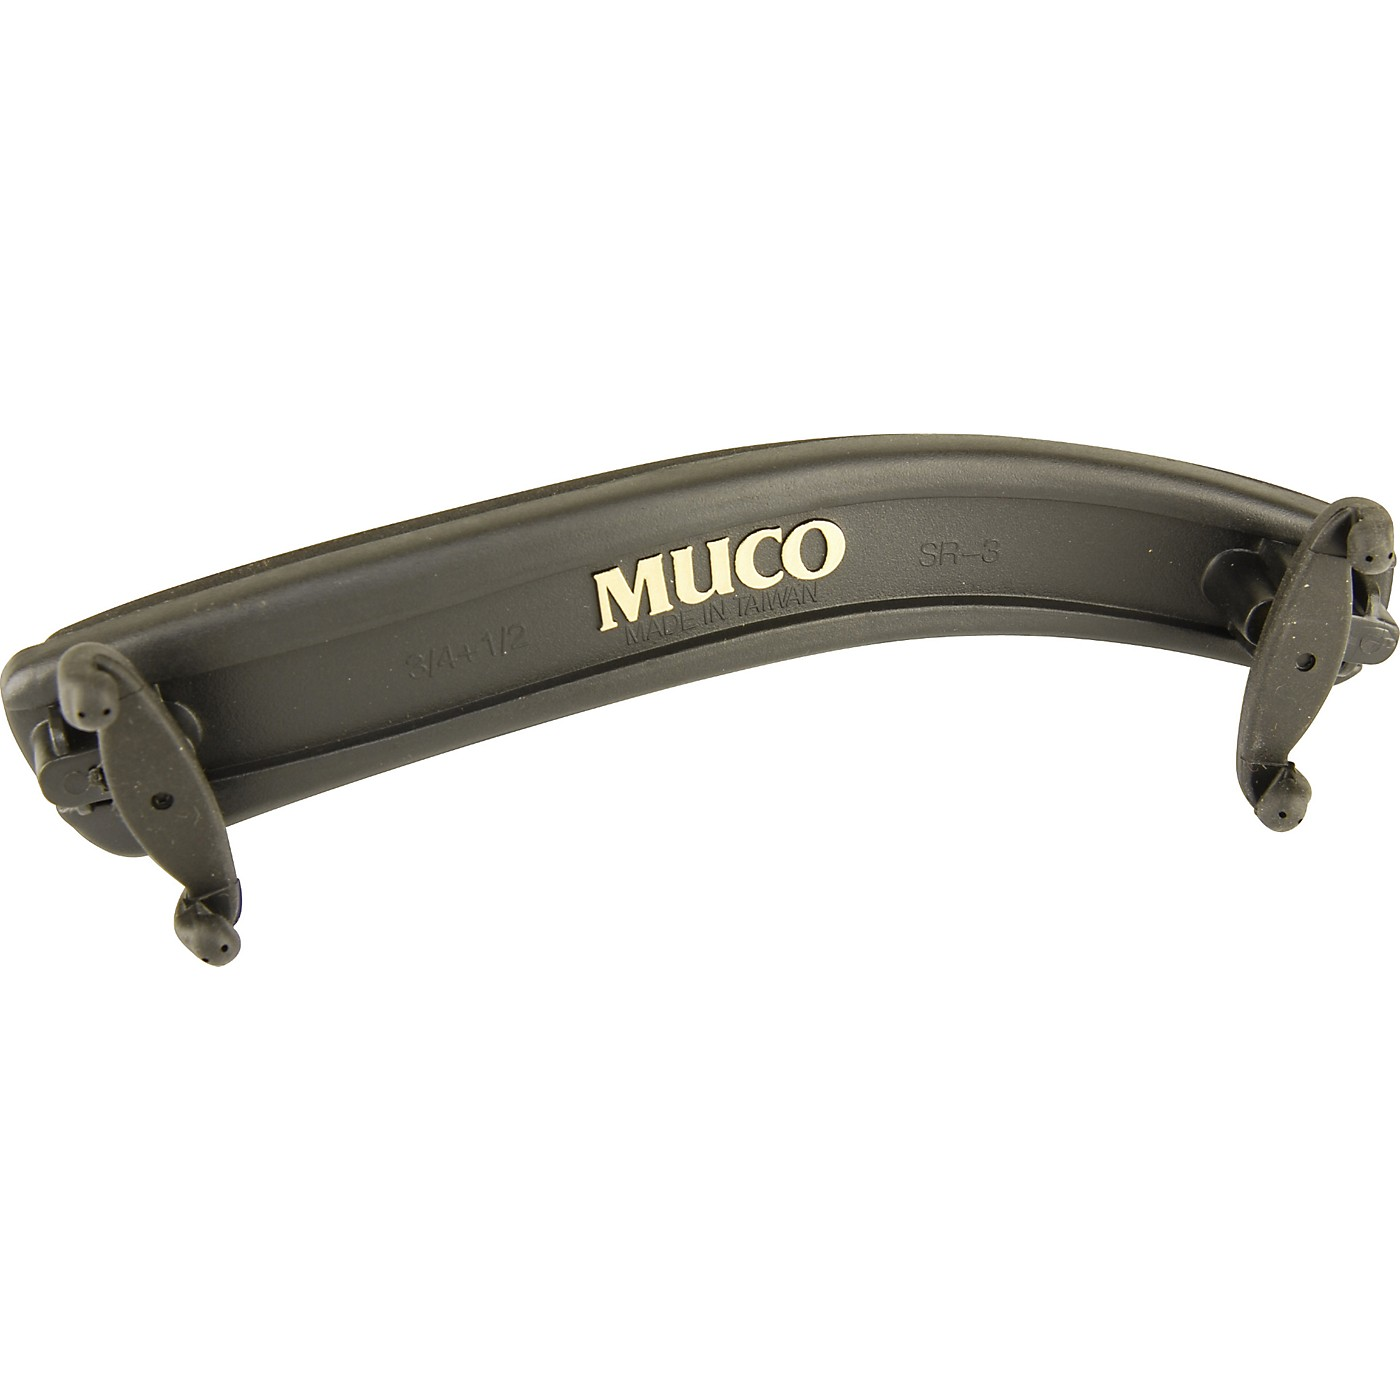 MUCO Muco Easy model shoulder rest thumbnail